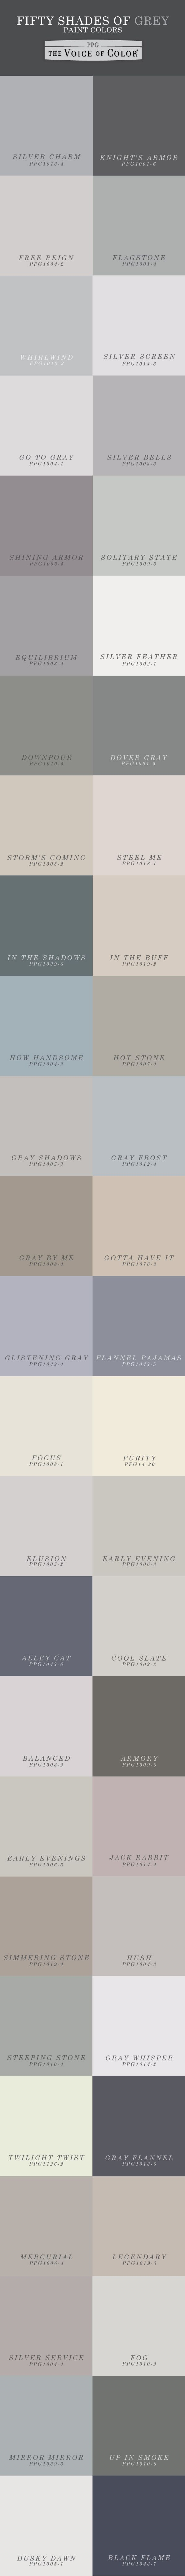 Fifty Shades of Grey Paint Colors from the PPG Voice of Color® palette! Here are 50 shades of grey to fuel your neutral color inspiration and grey color schemes. #50shades